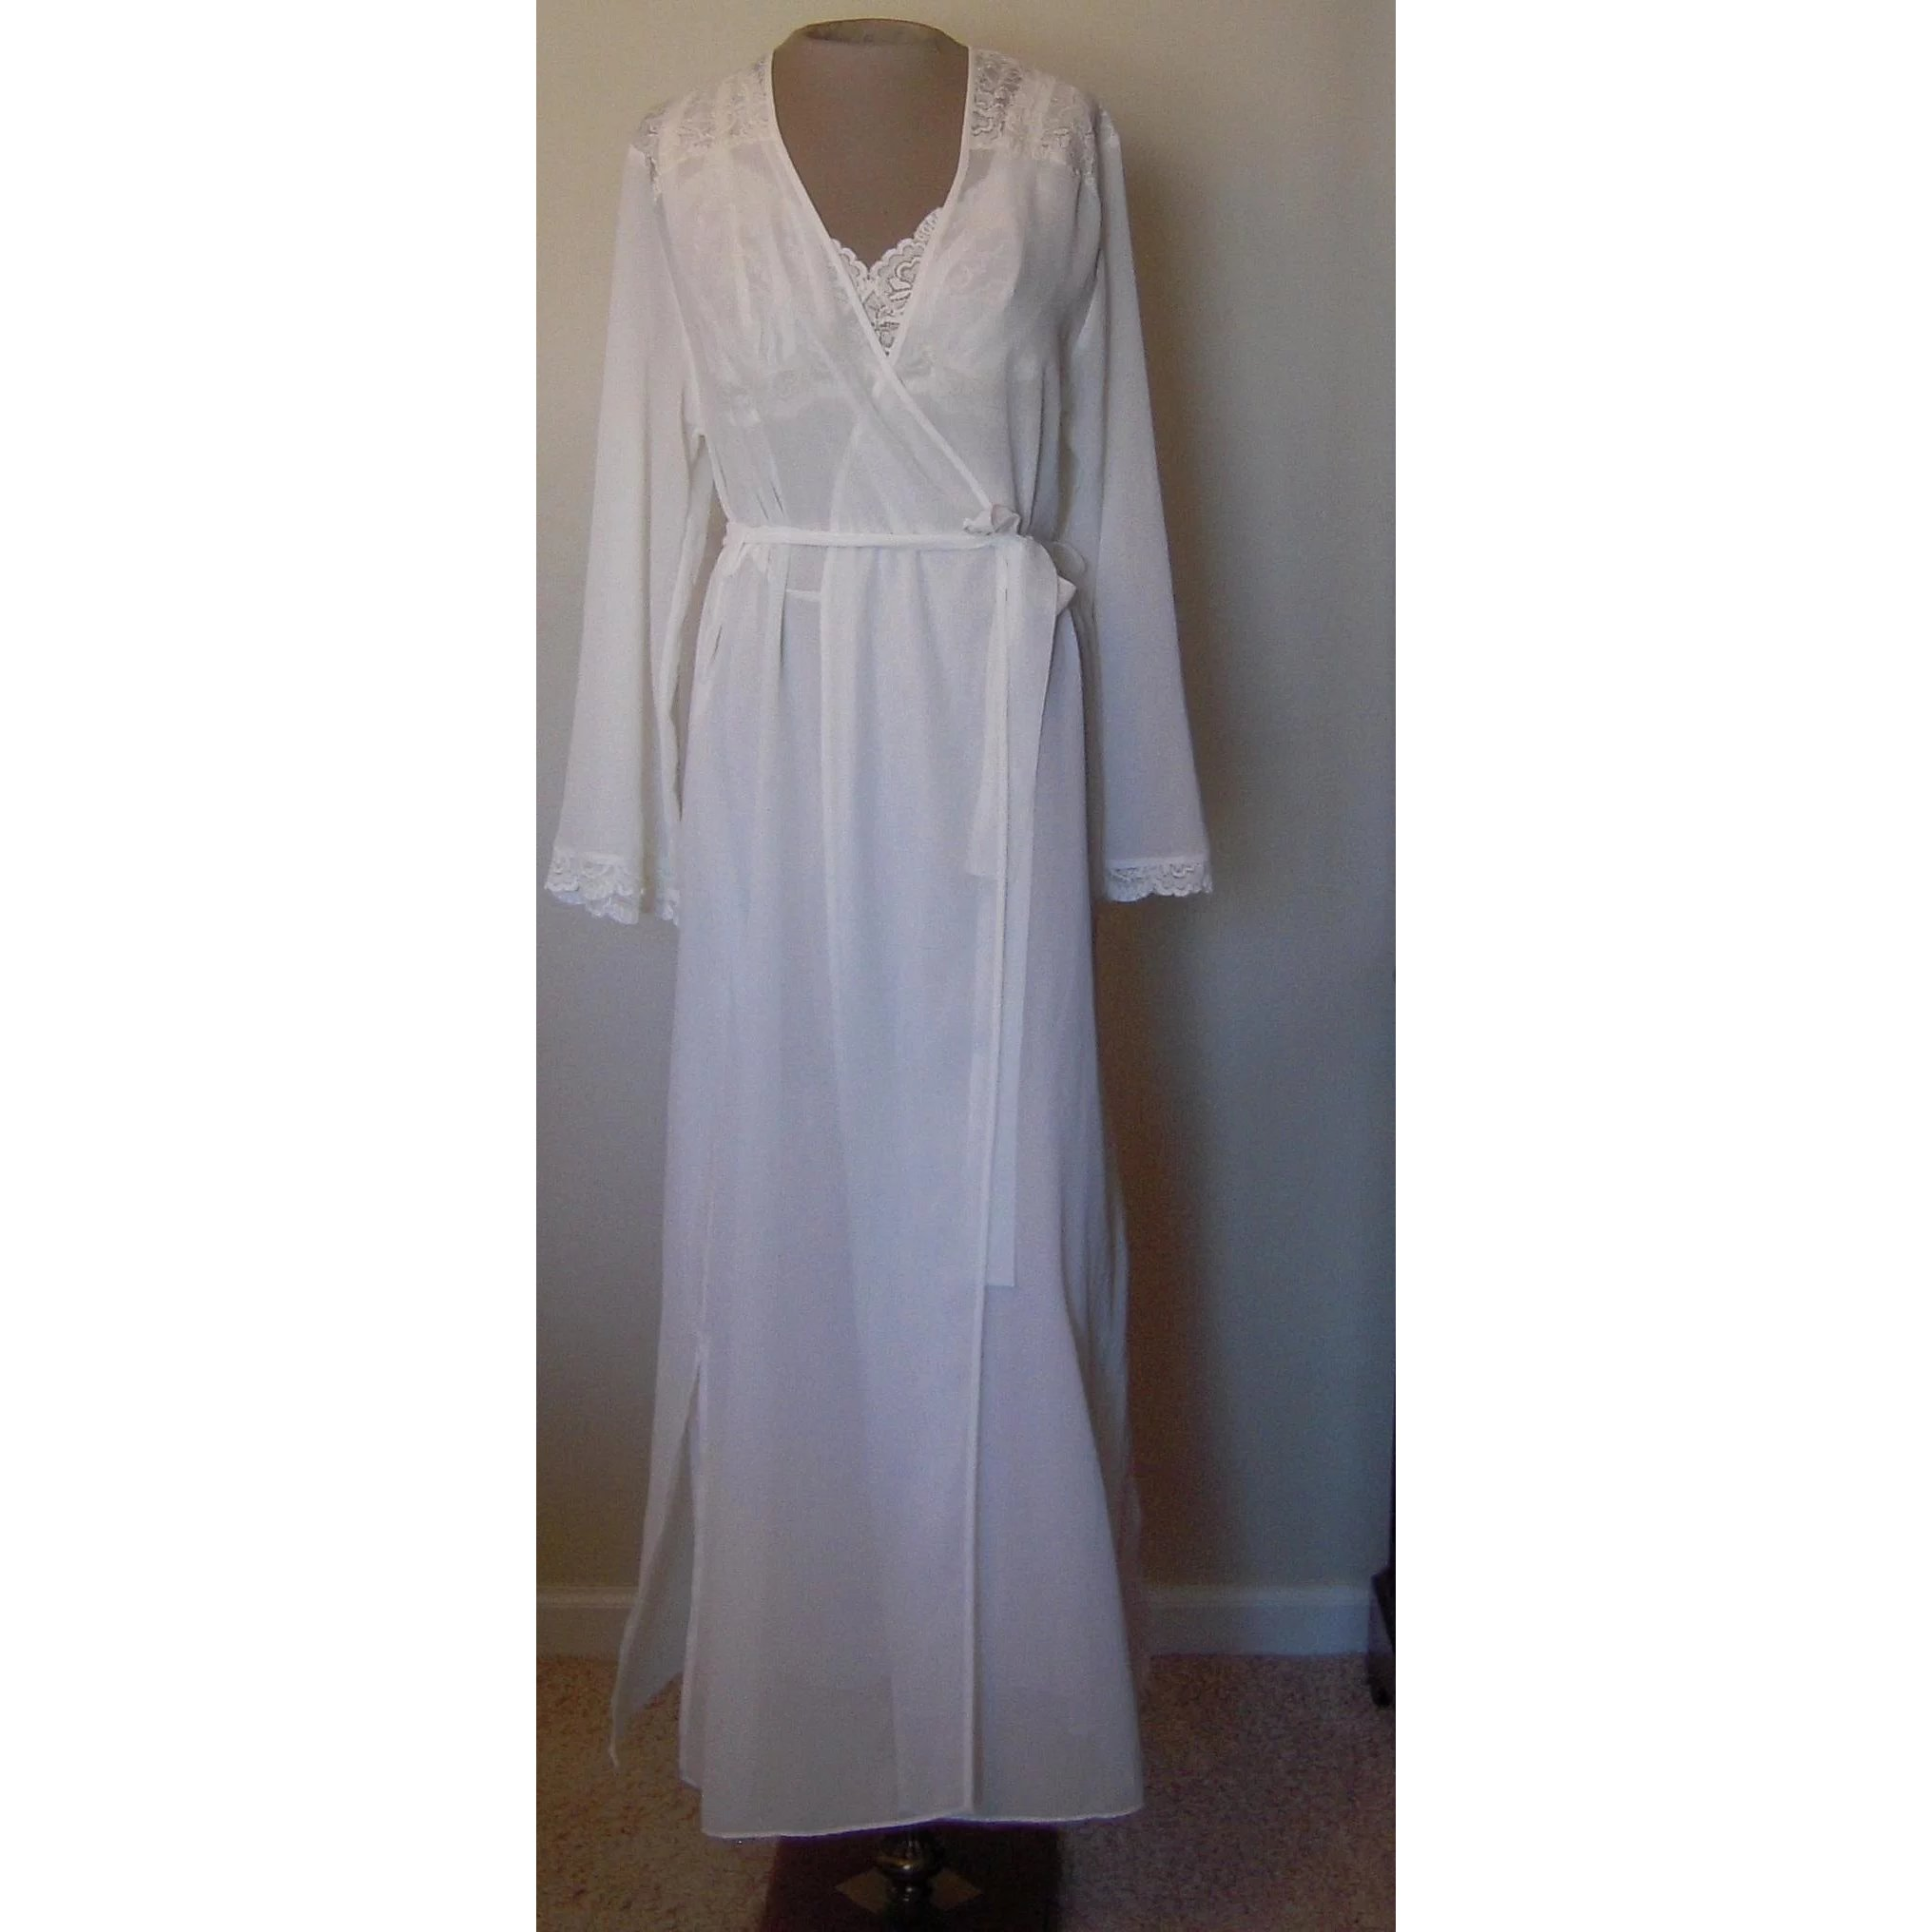 Valerie Stevens Soft White Nightgown and Robe with Lace : Beca\'s ...